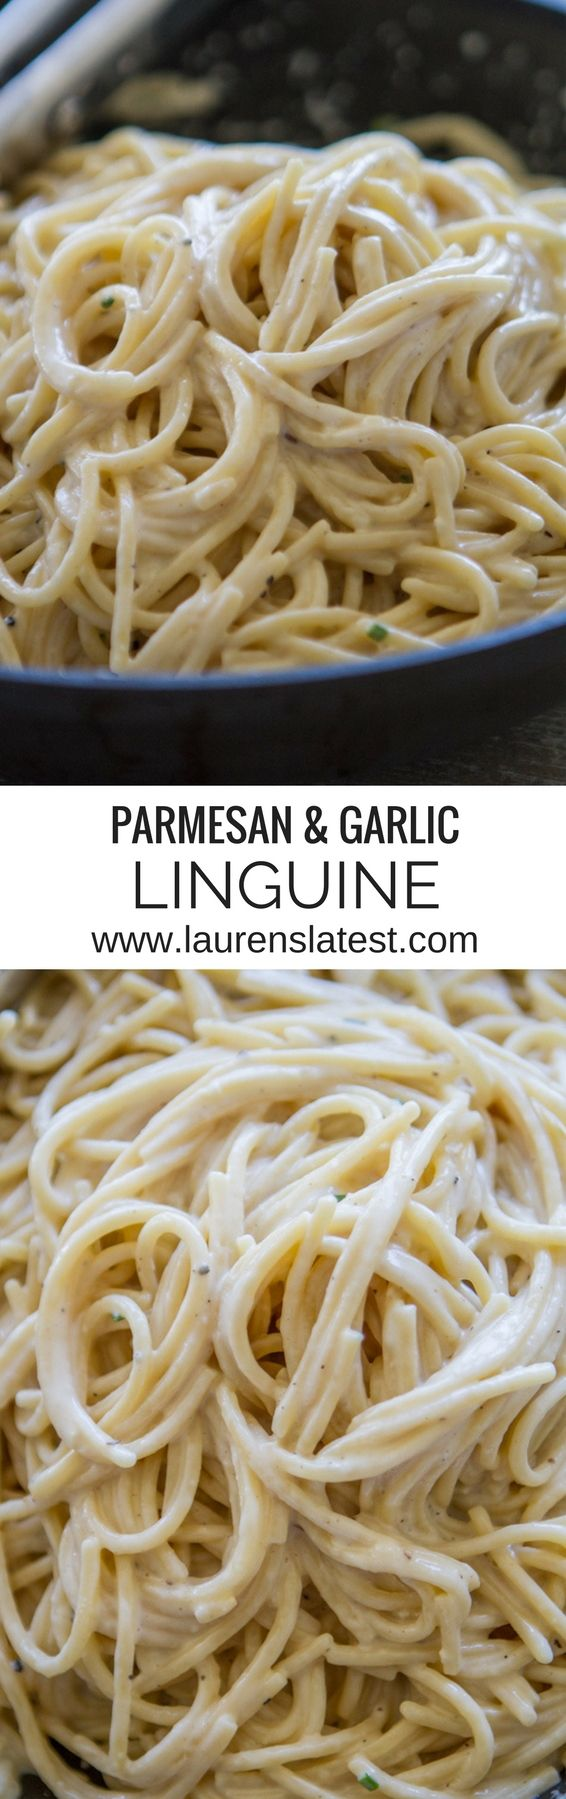 Parmesan & Garlic Linguine....a fast, creamy, garlicky, vegetarian dinner!! Add chicken and veggies for a complete meal.